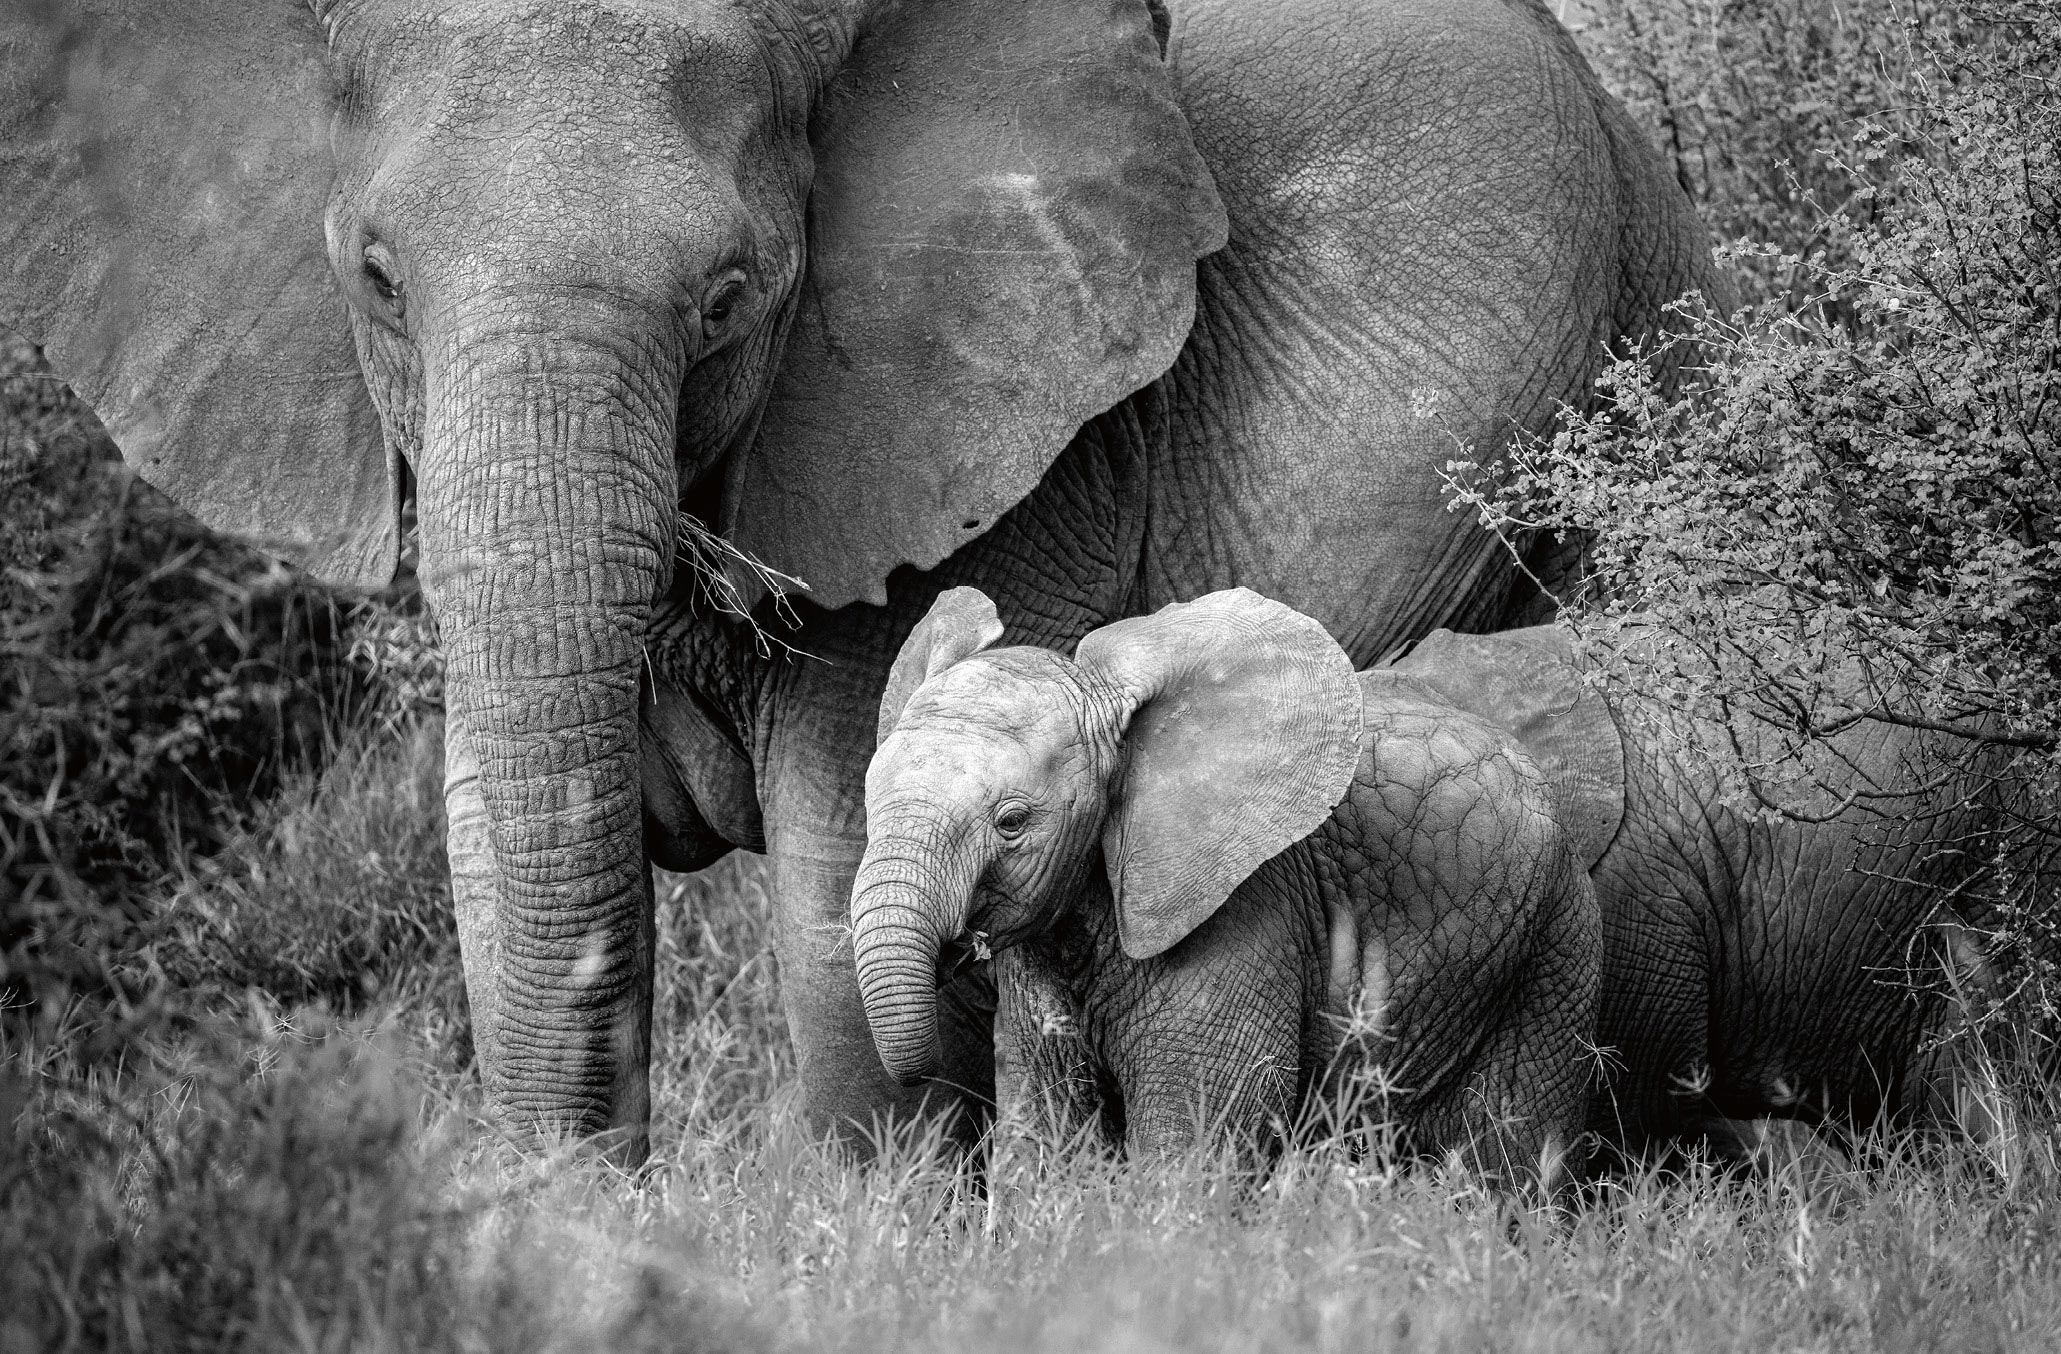 African elephants photographed by Susan McConnell.